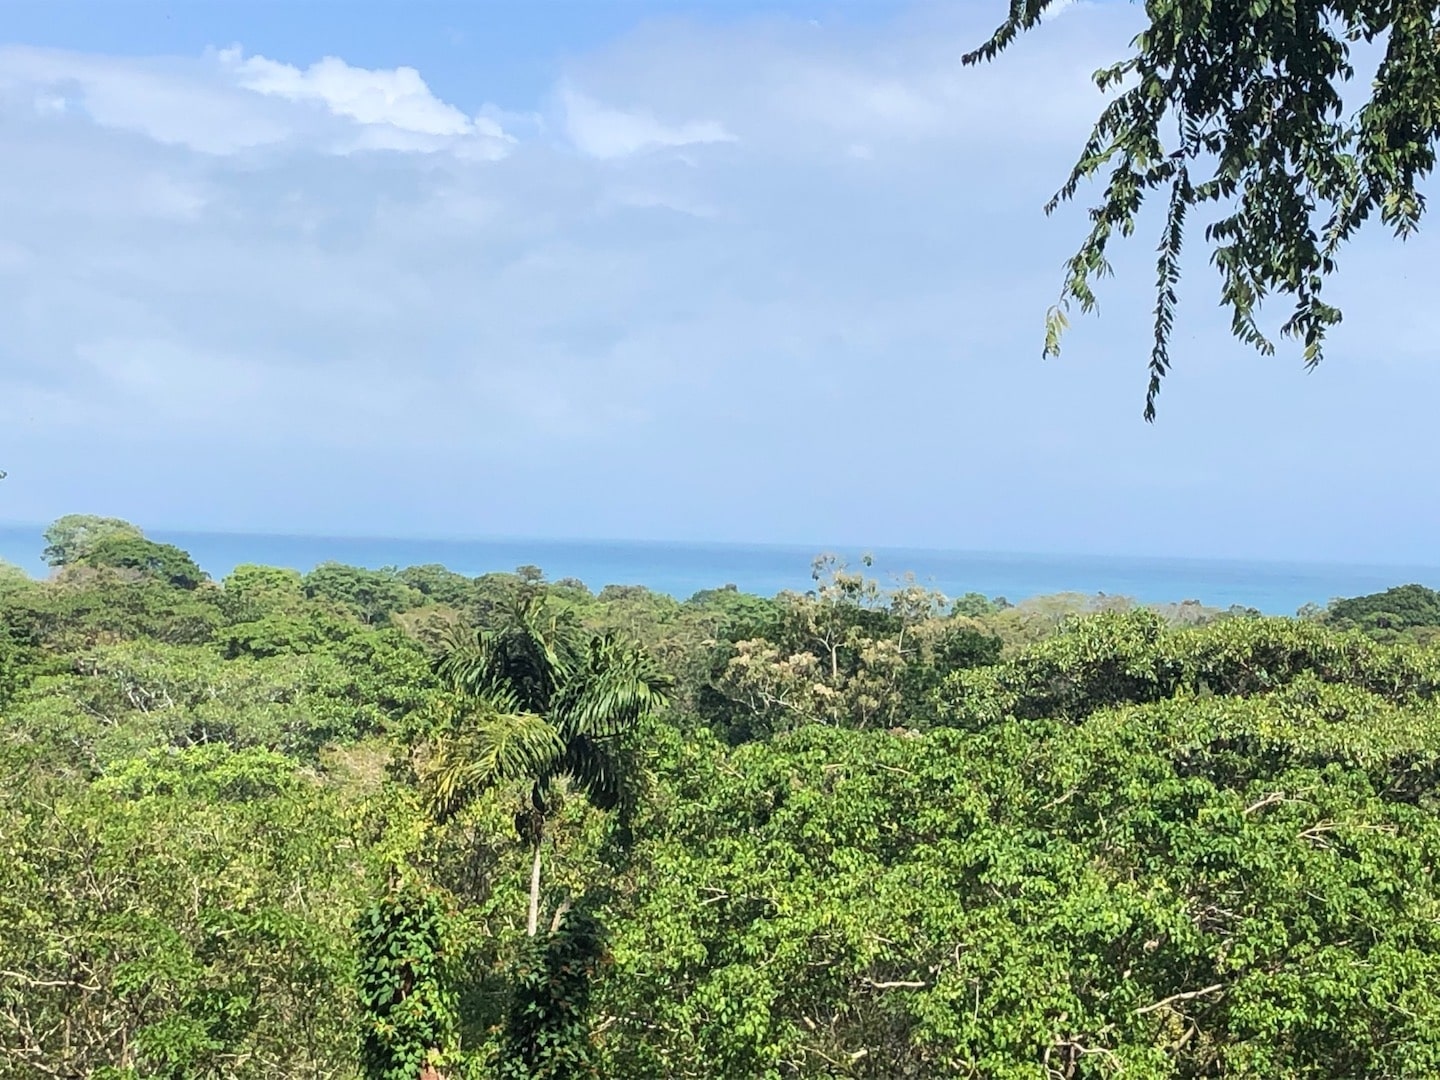 Ocean View Property with Potencial for Hotel ro B&B